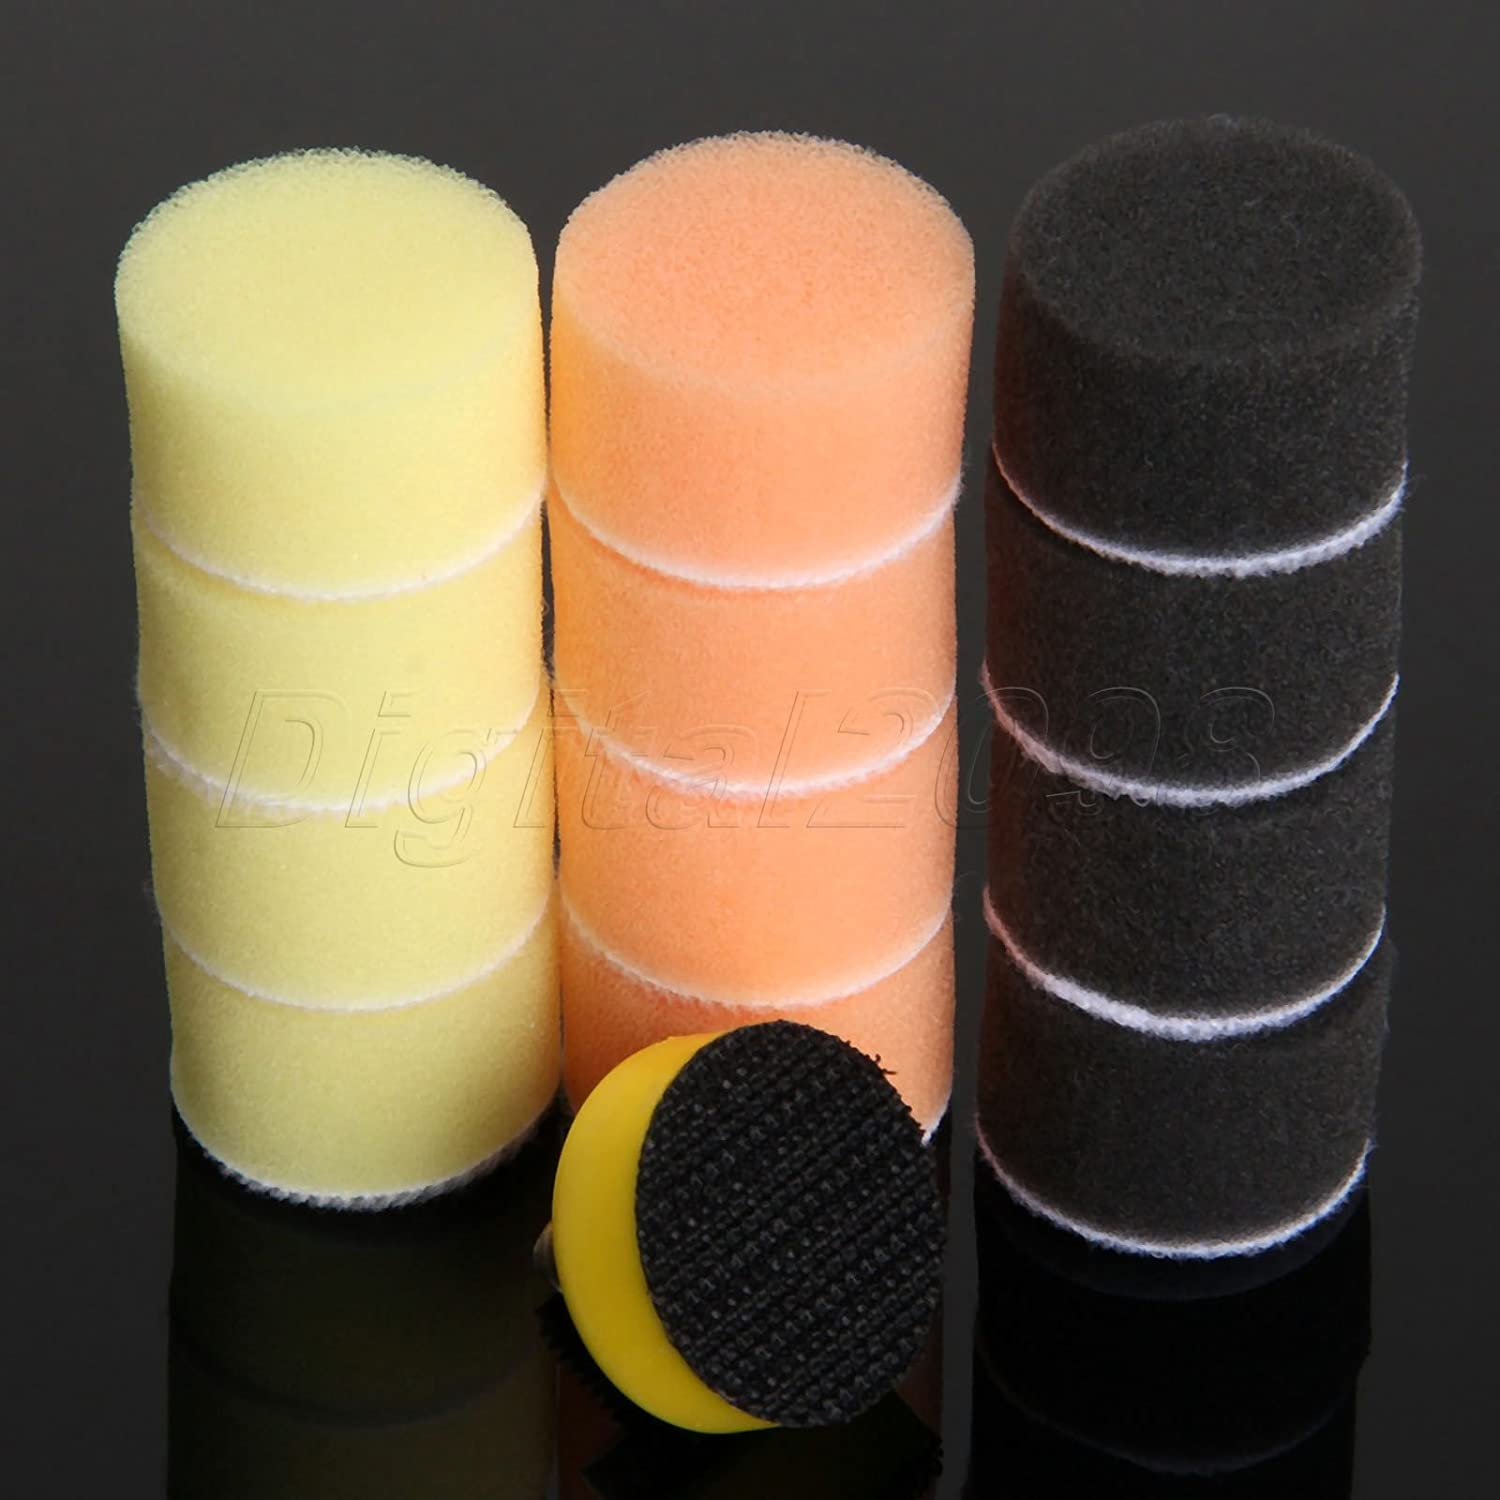 Iris-Shop 50Pc 1 Inch 25mm Sponge Buffing Polishing Waxing Pad Kit for Car Polisher Wash M6 Backer Plate Polish Tool Car-Styling